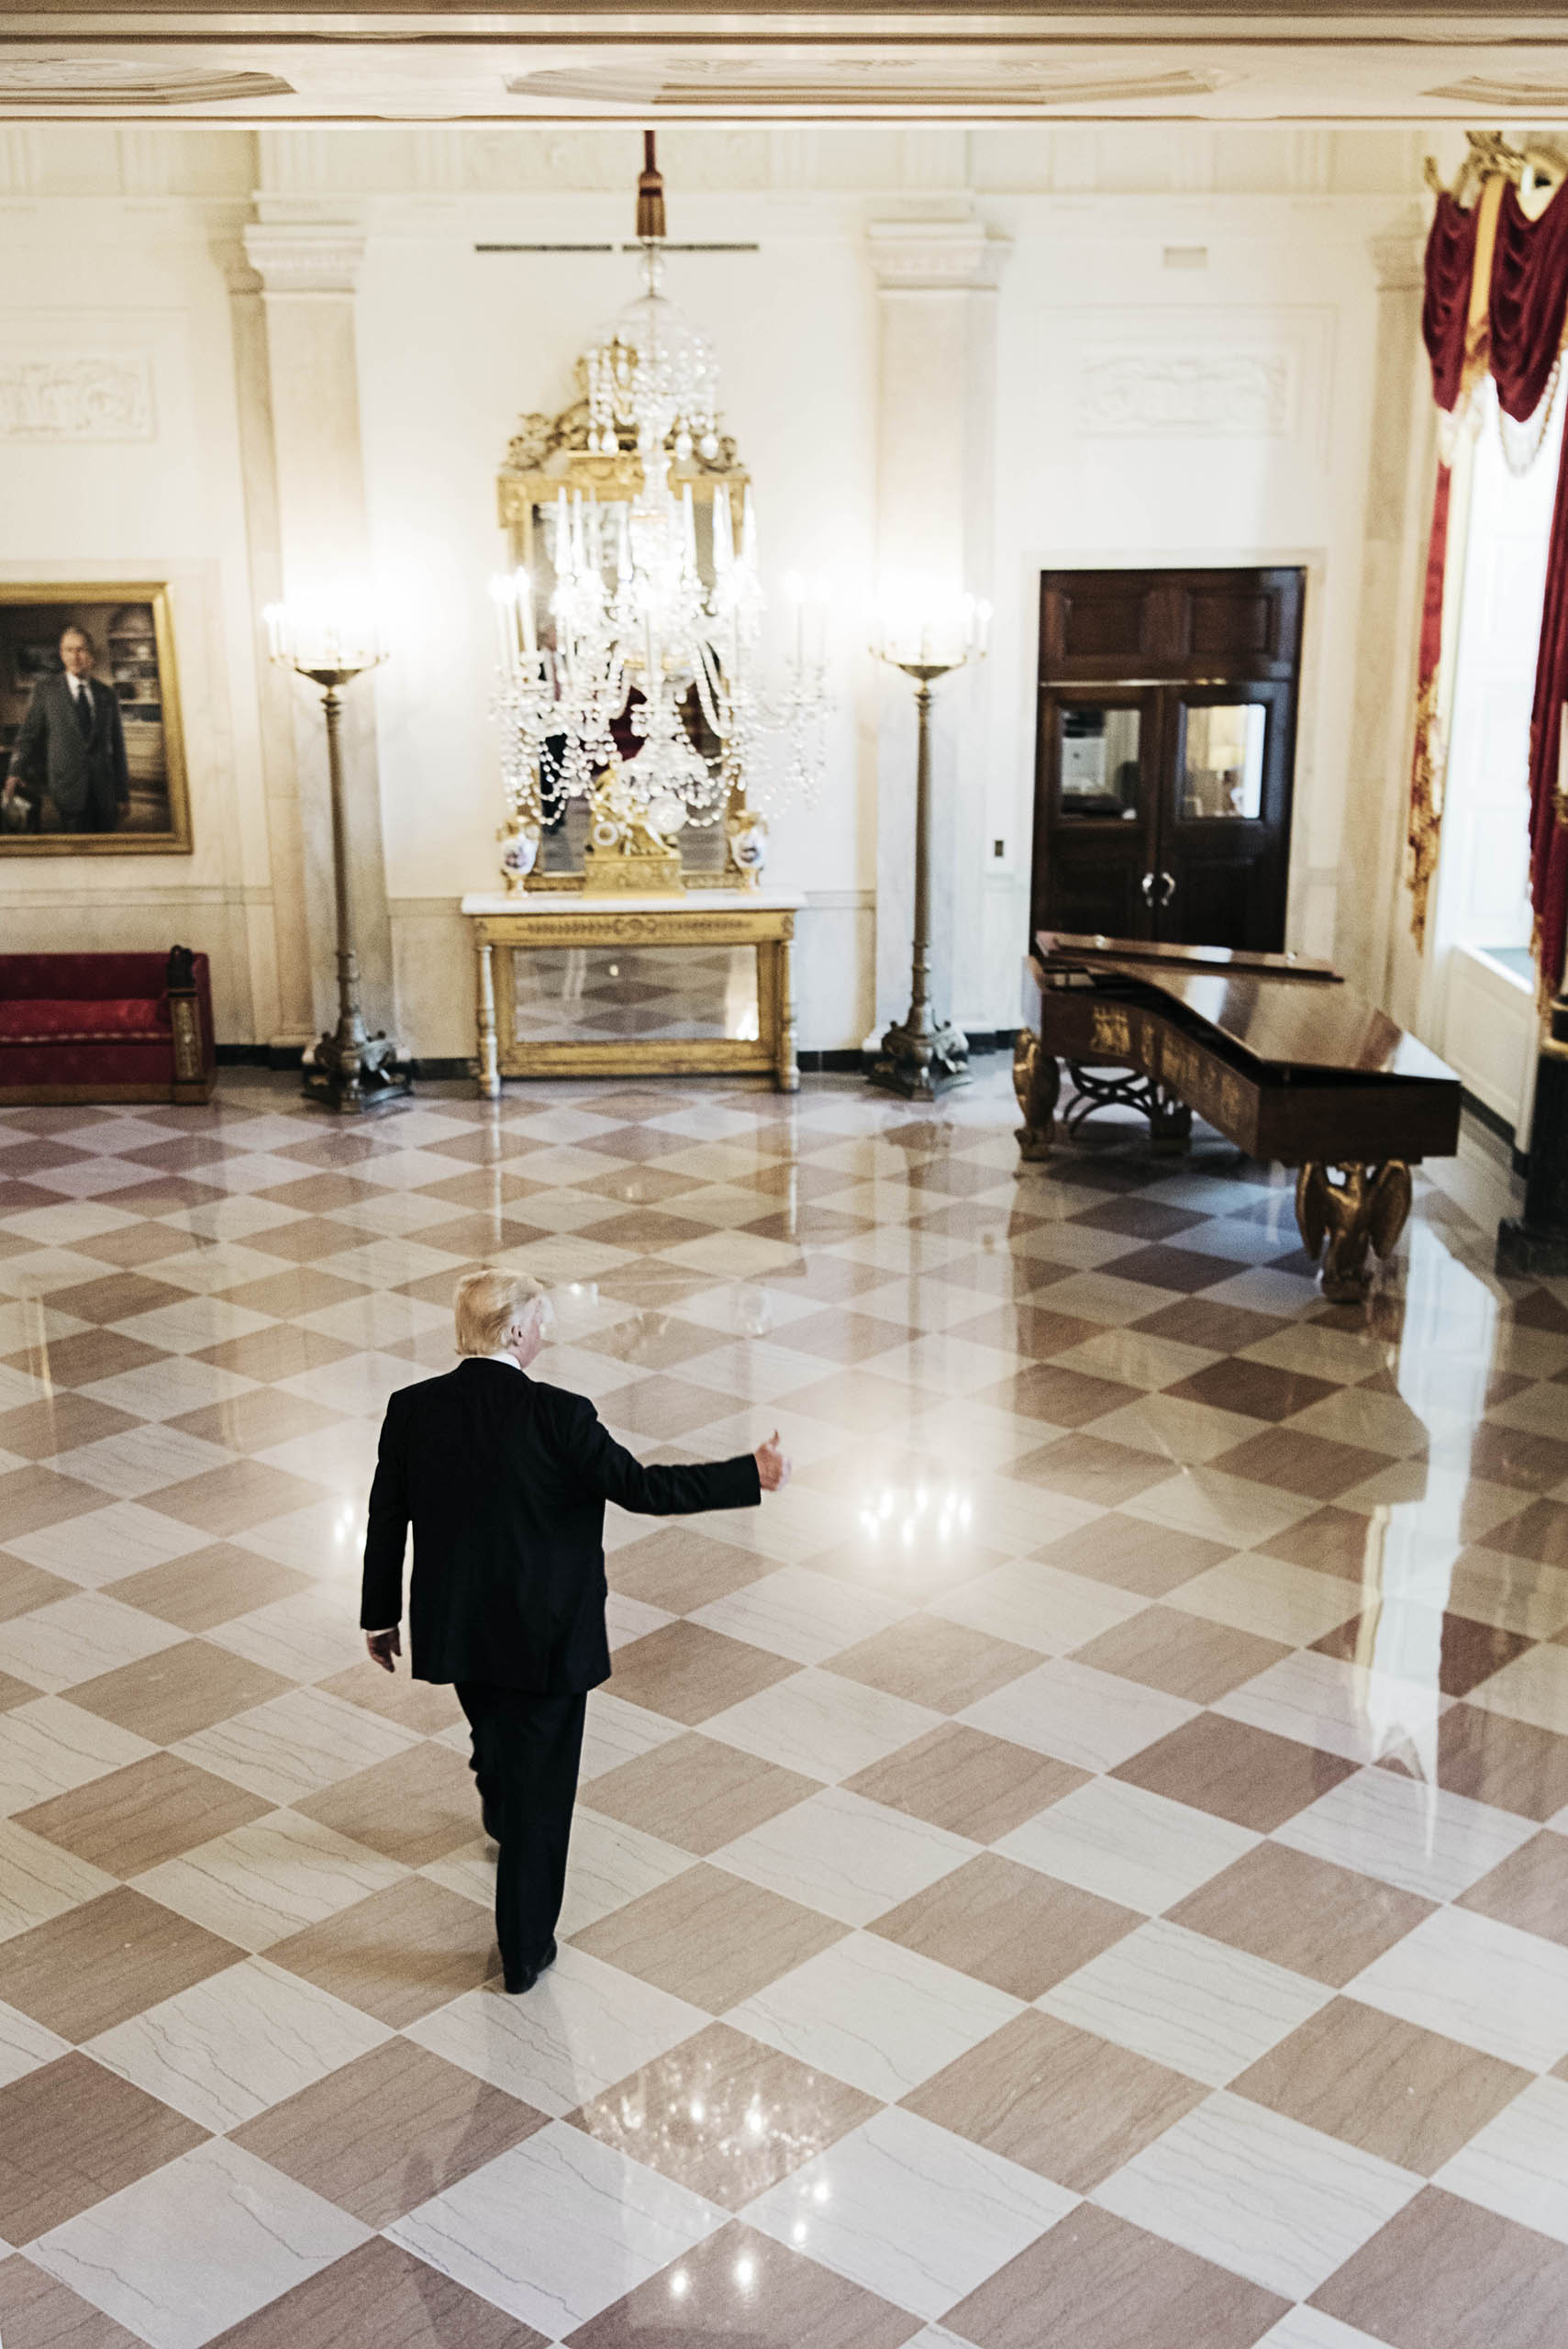 President Trump in the Grand Foyer of the White House, Washington, D.C., May 8, 2017.